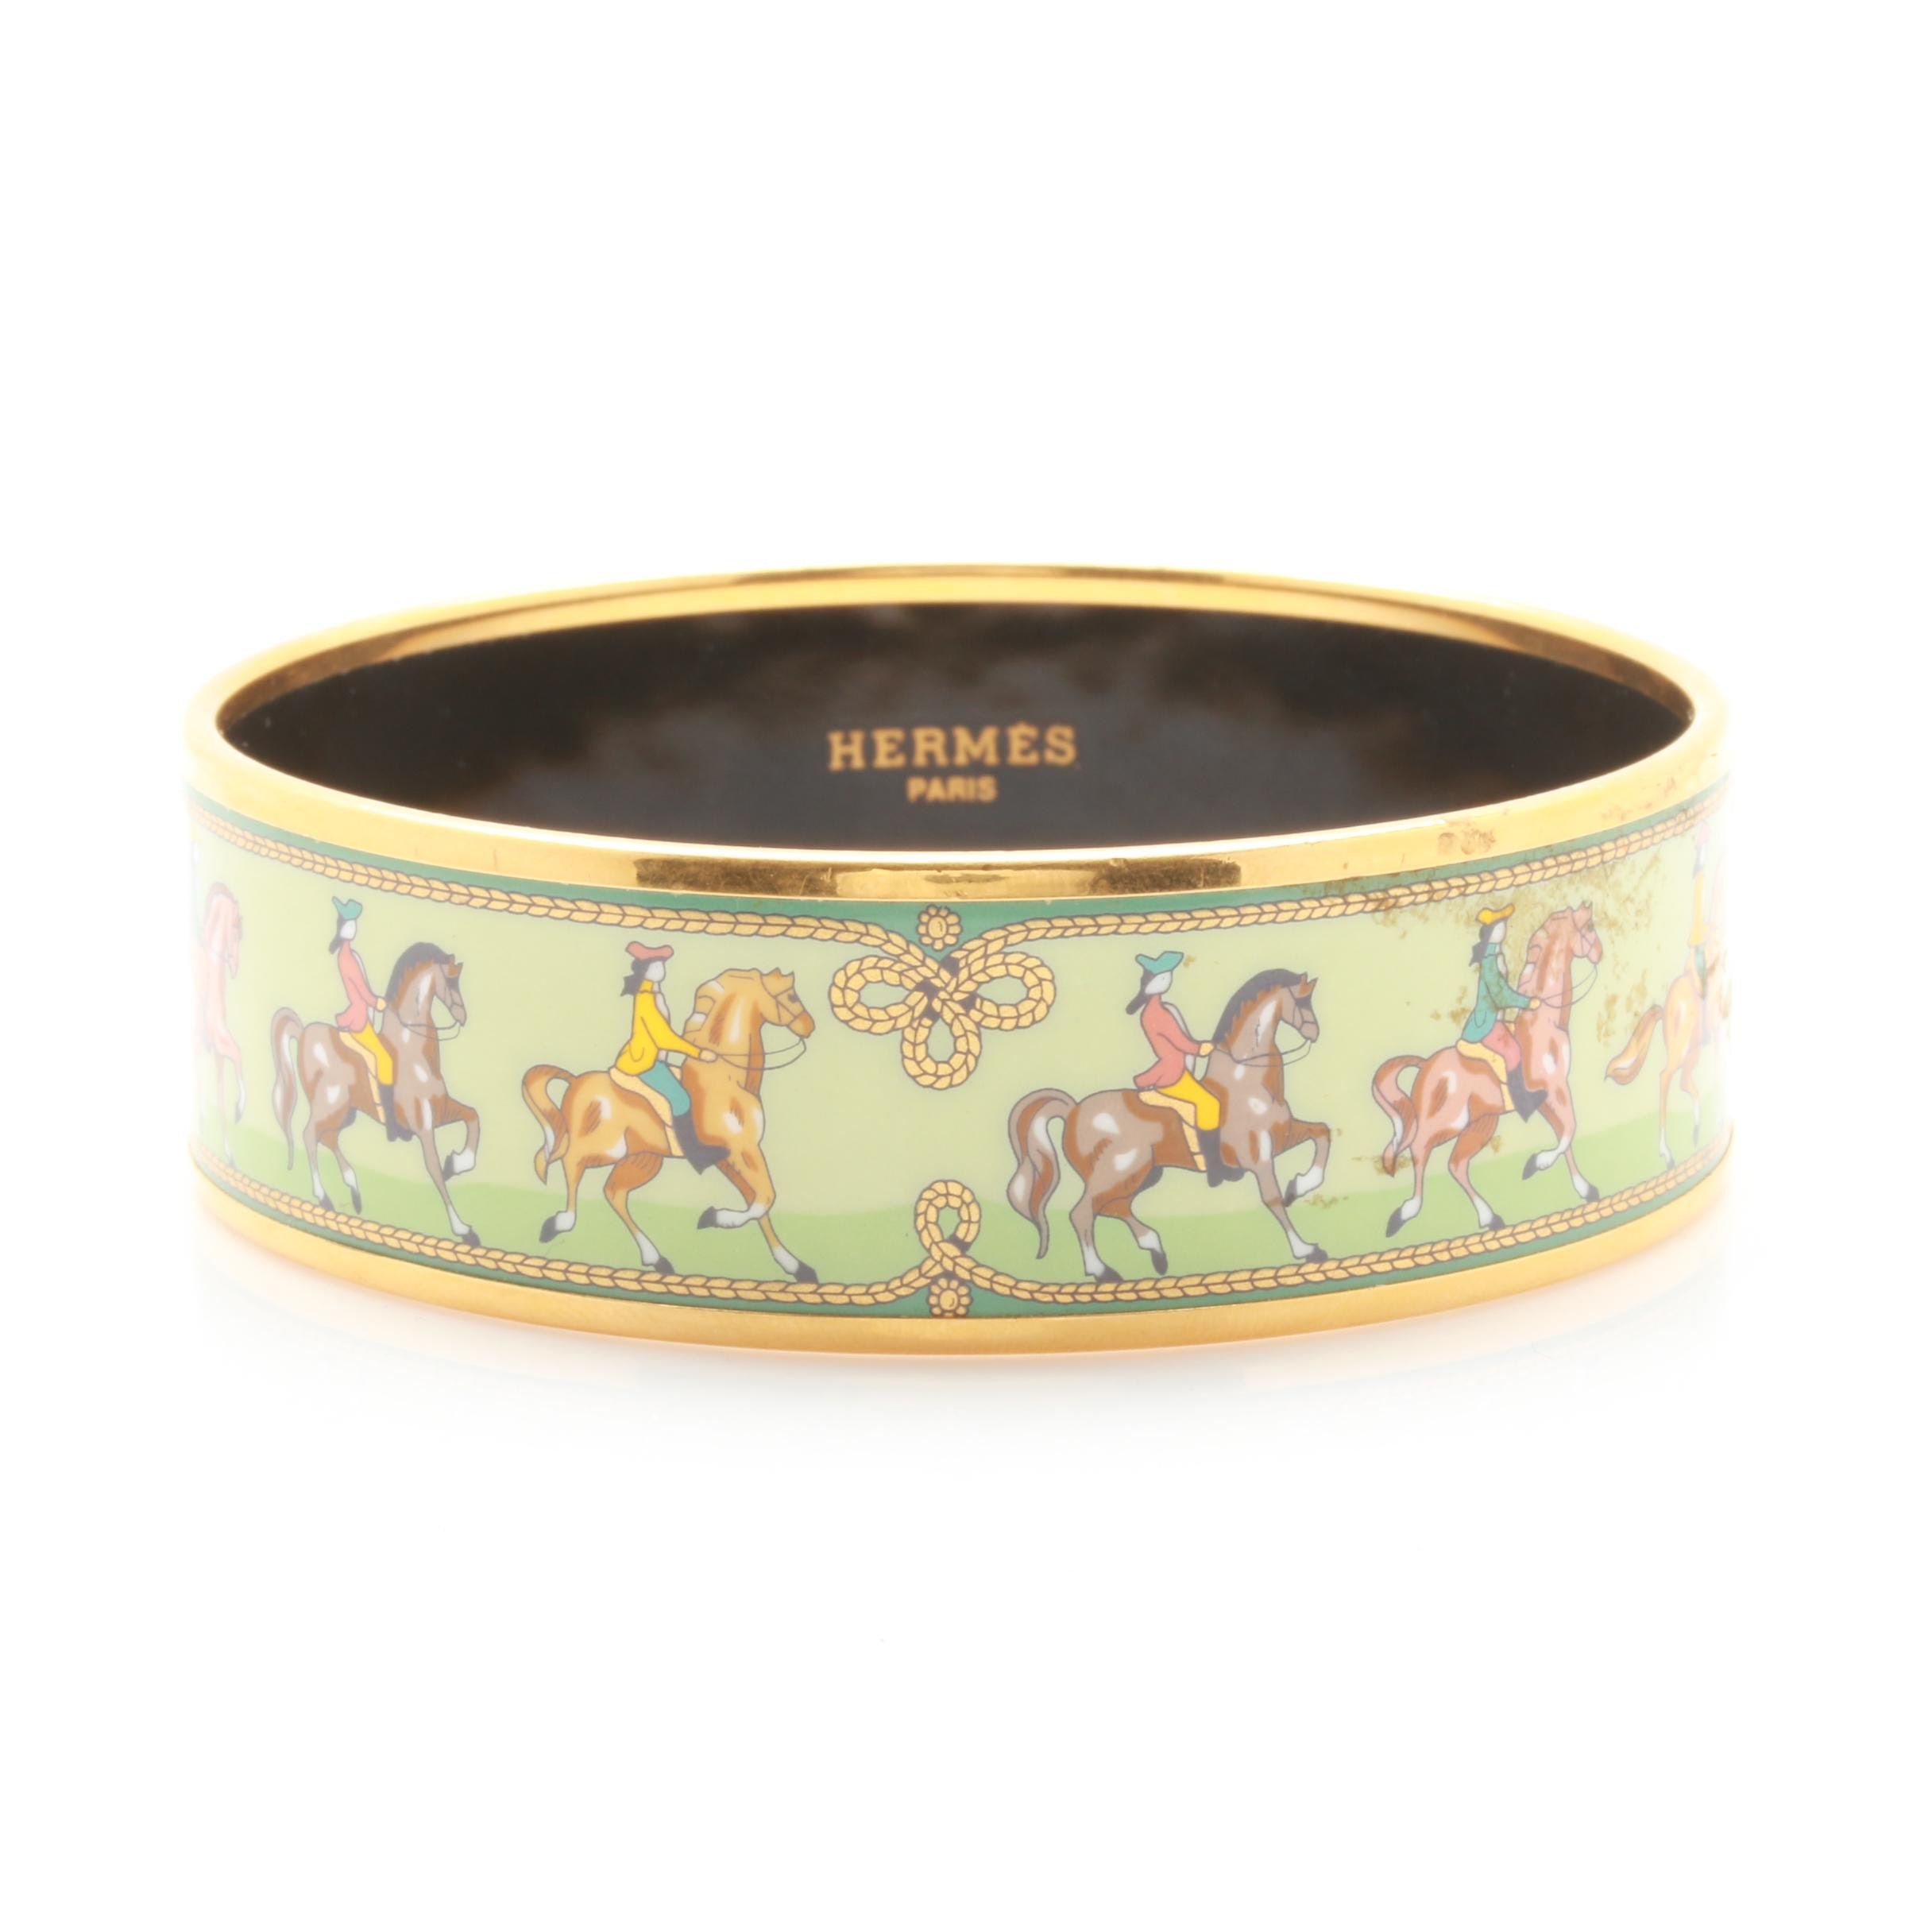 Hermes Gold Tone Equestrian Bangle Bracelet